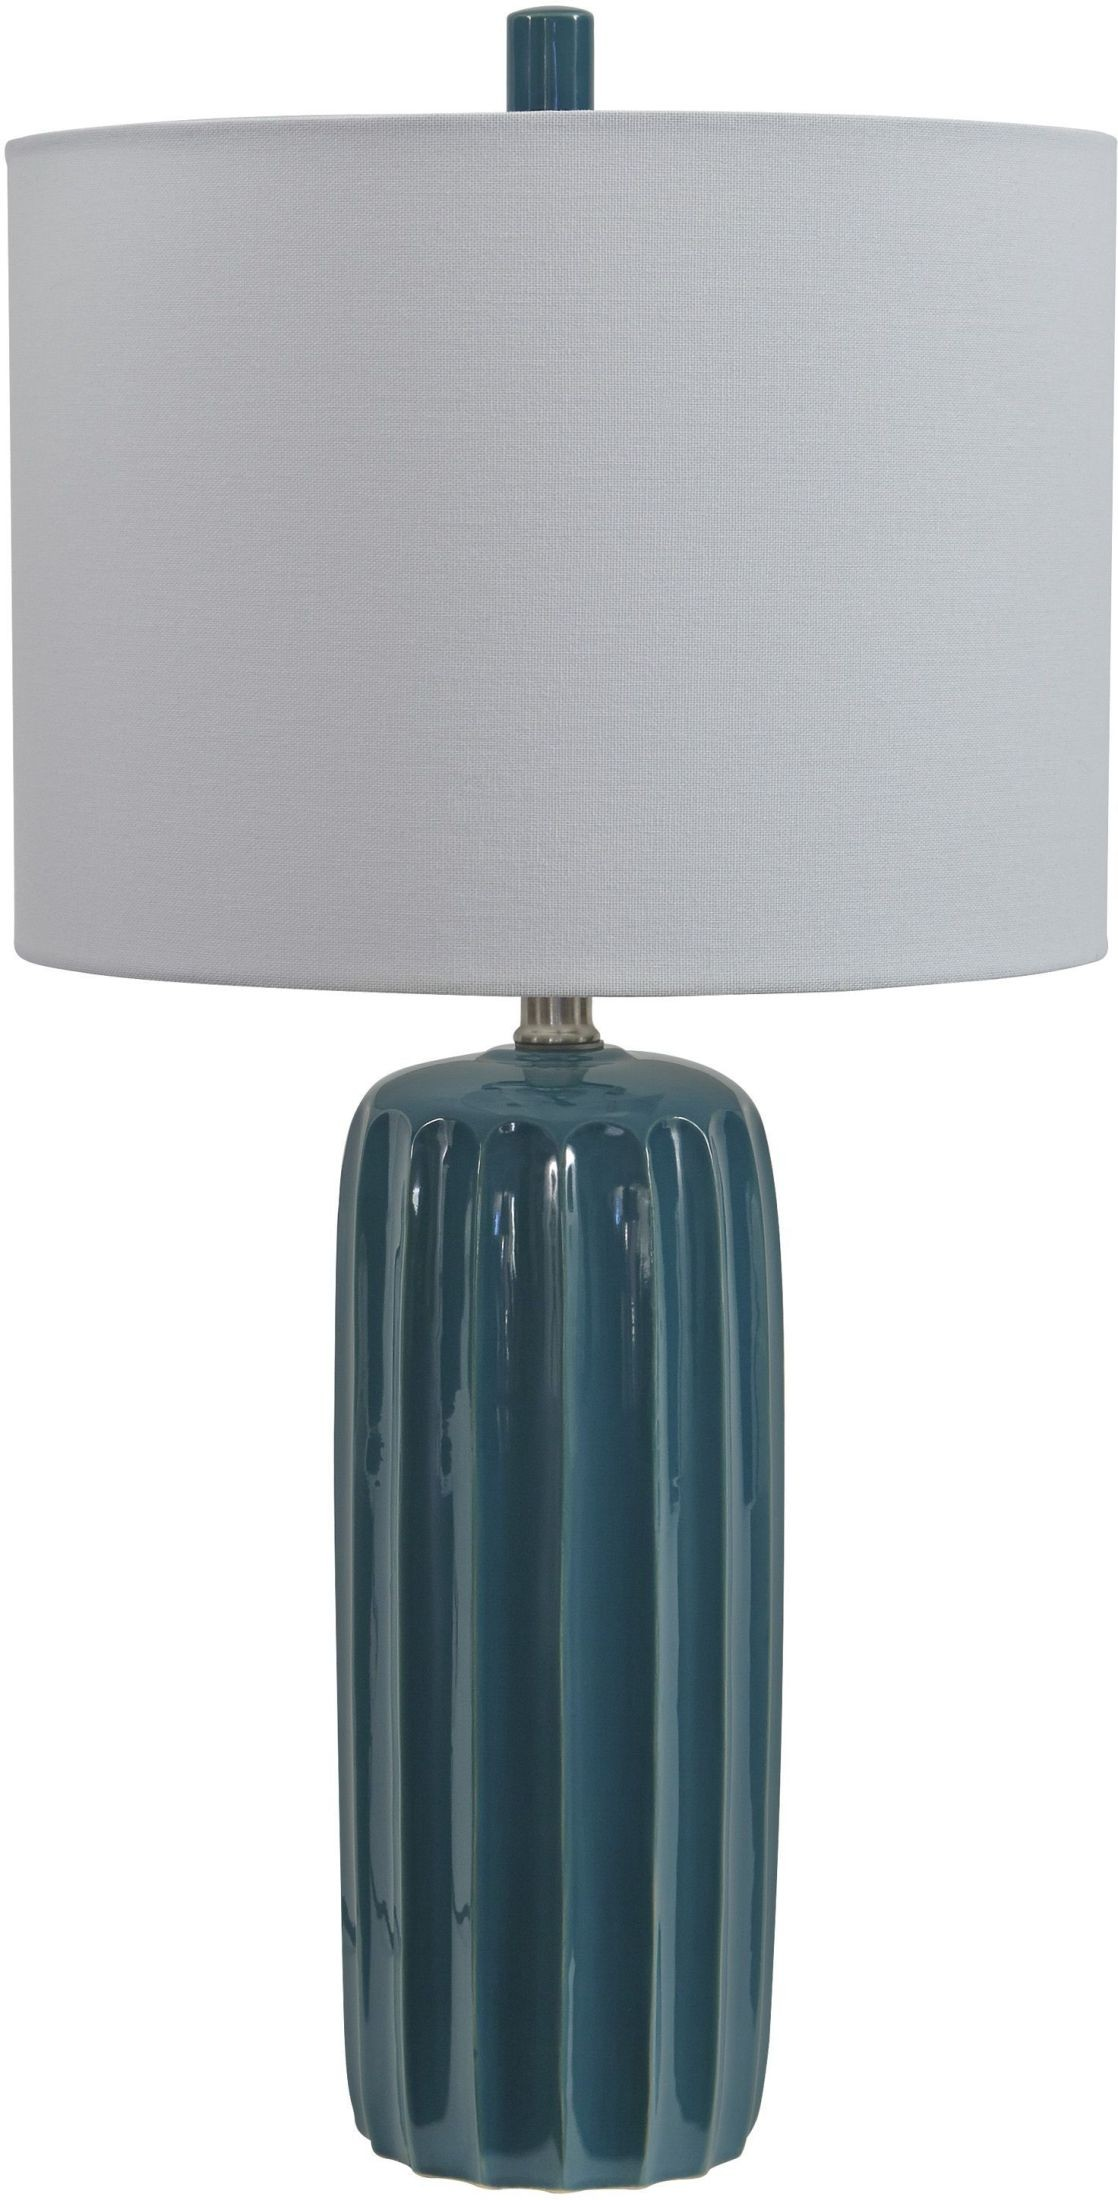 Adorlee Teal Ceramic Table Lamp, L177924, Ashley